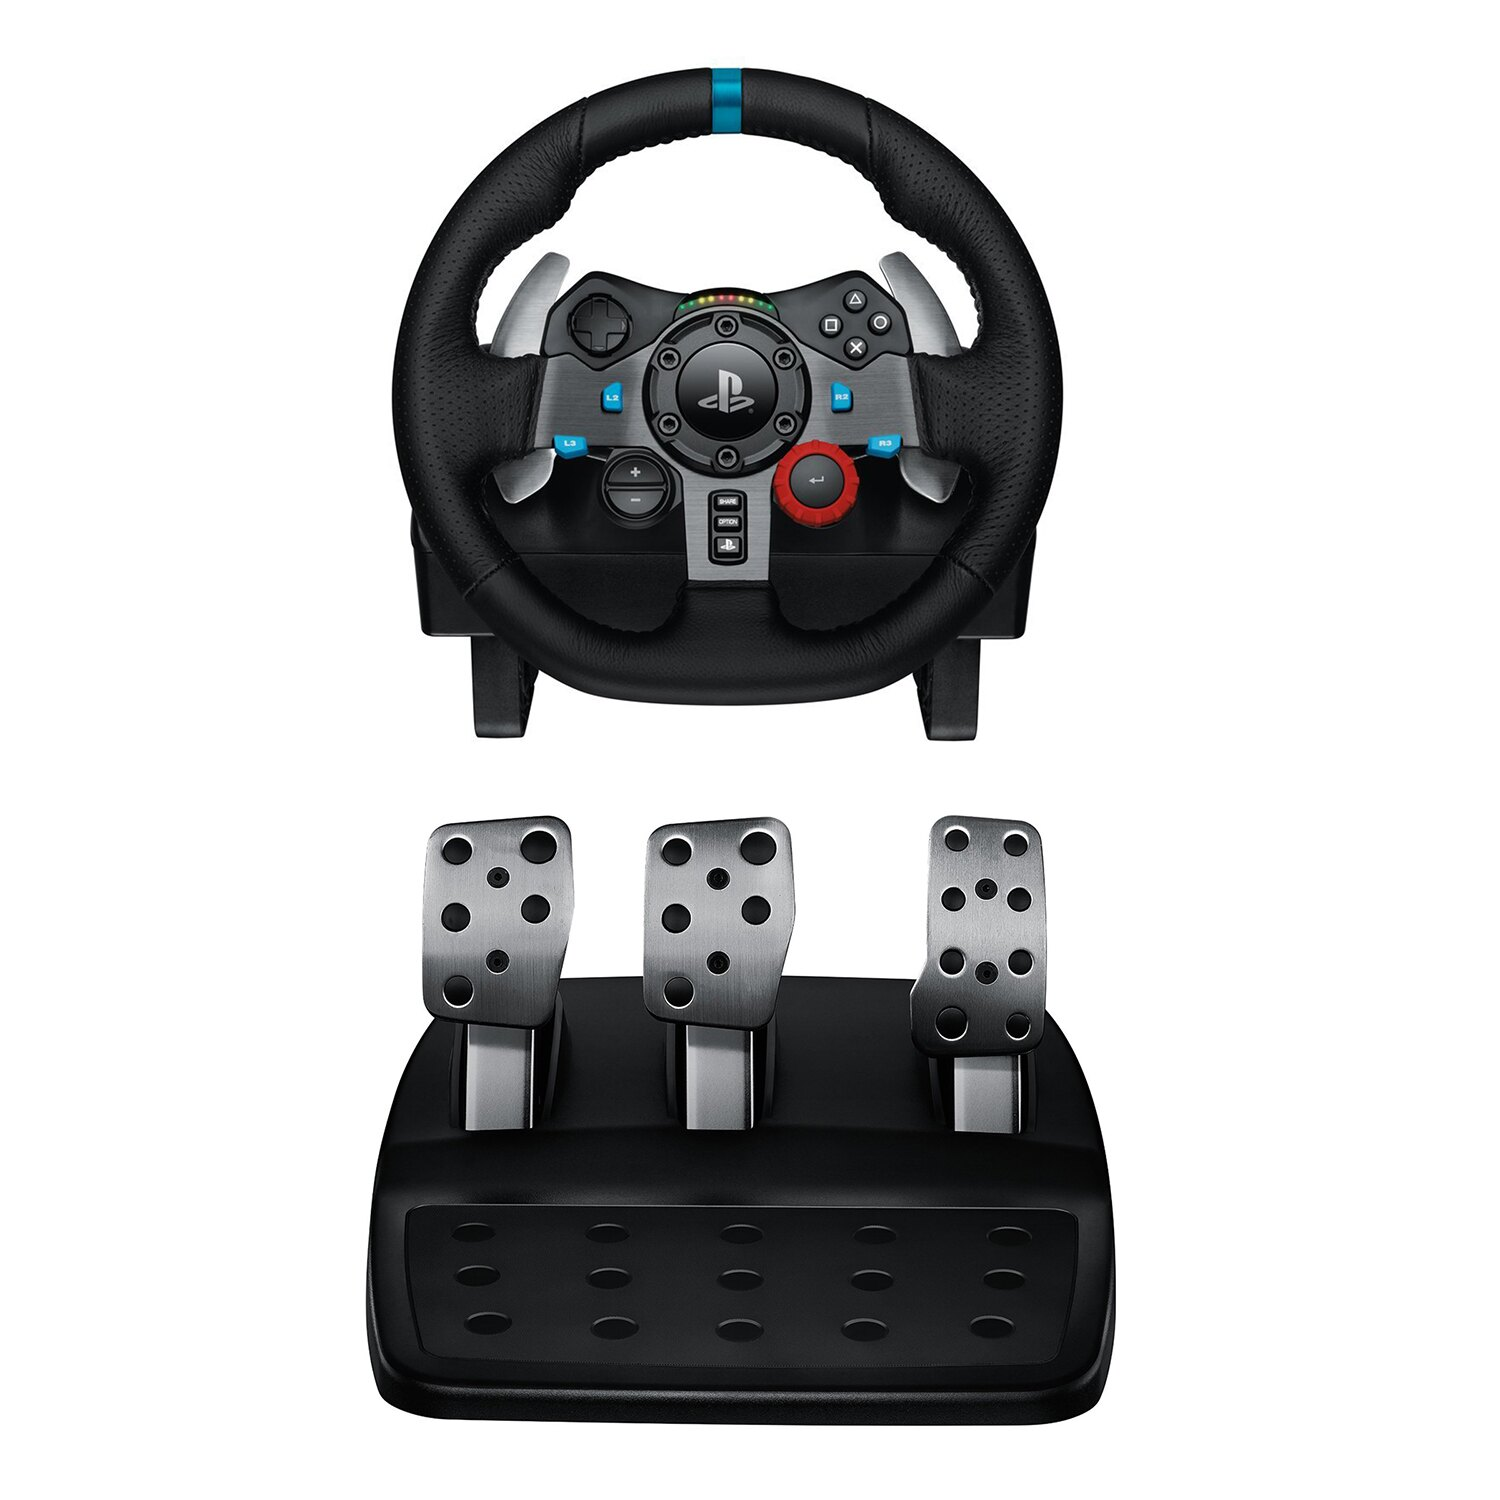 Logitech G29 Driving Force Racing Wheel Dual Motor Force Feedback for PS3 & PS4 0